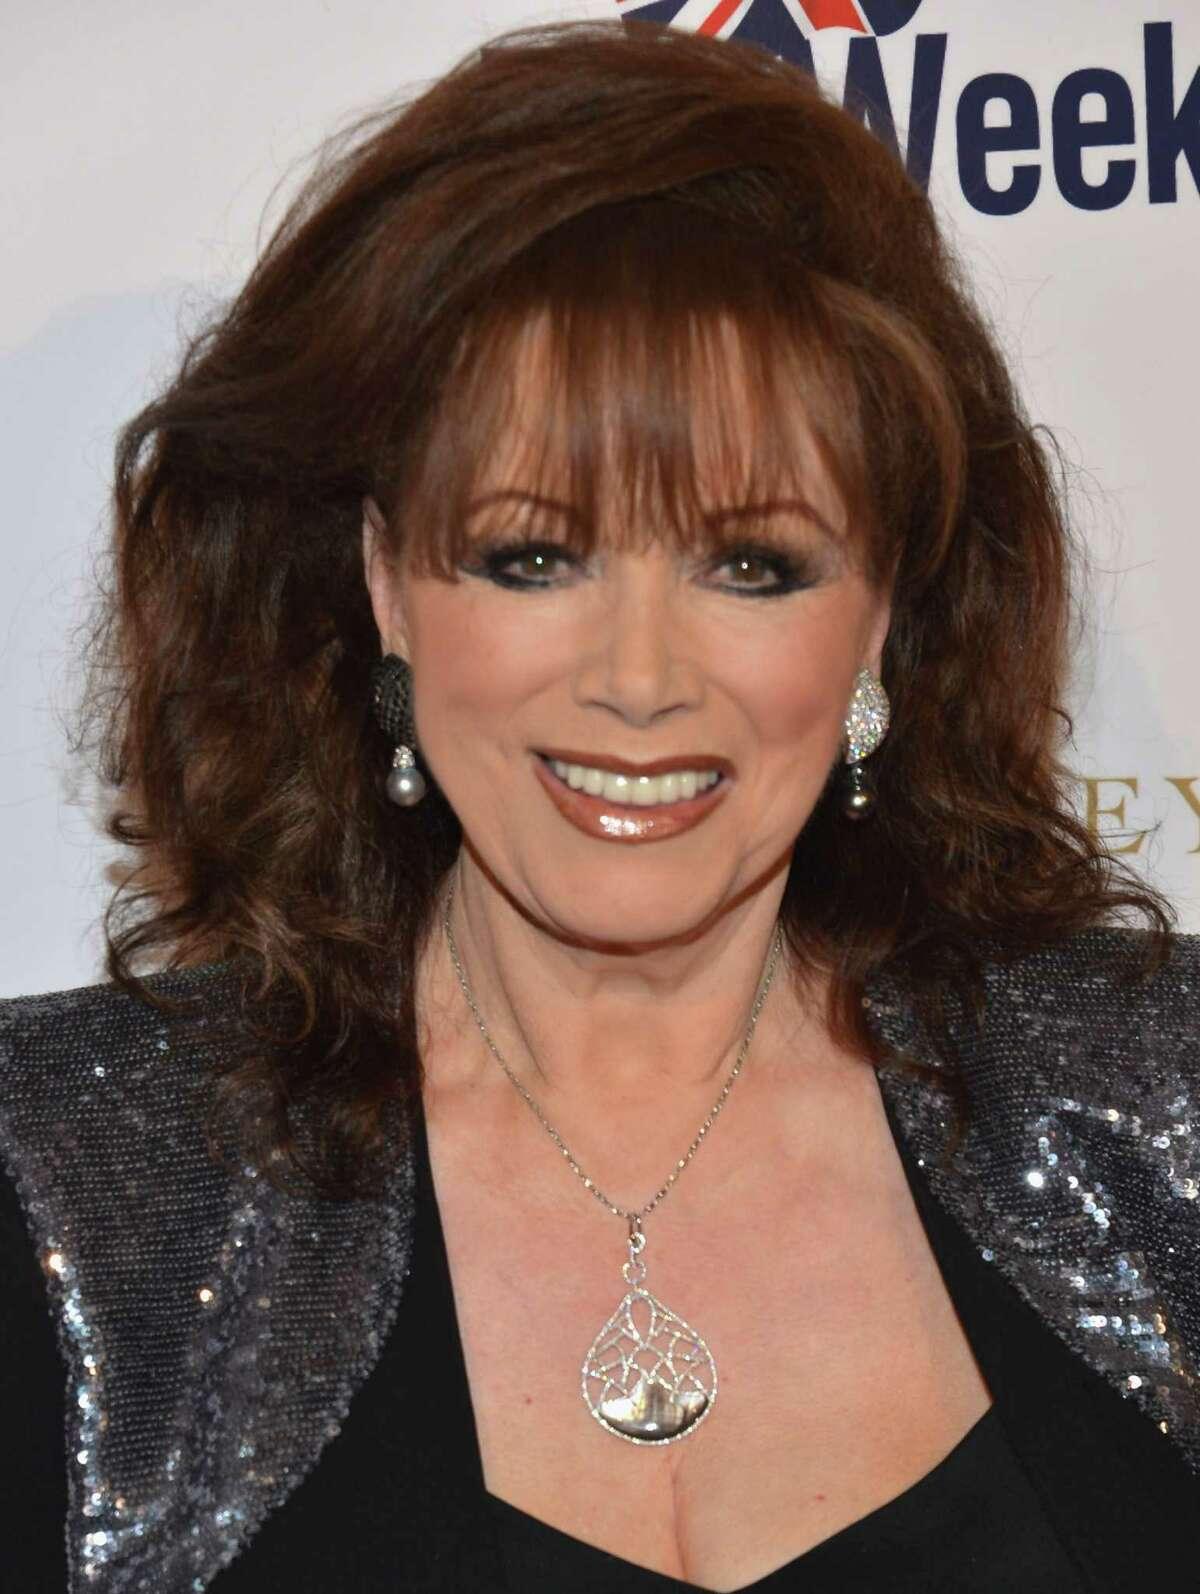 """FILE - SEPTEMBER 19: Novelist Jackie Collins has passed away after a battle with breast cancer. She was 77 years old. BEVERLY HILLS, CA - MAY 04: Author Jackie Collins arrives to BritWeek 2012's """"Evening with Piers Morgan"""" on May 4, 2012 in Beverly Hills, California. (Photo by Alberto E. Rodriguez/Getty Images)"""